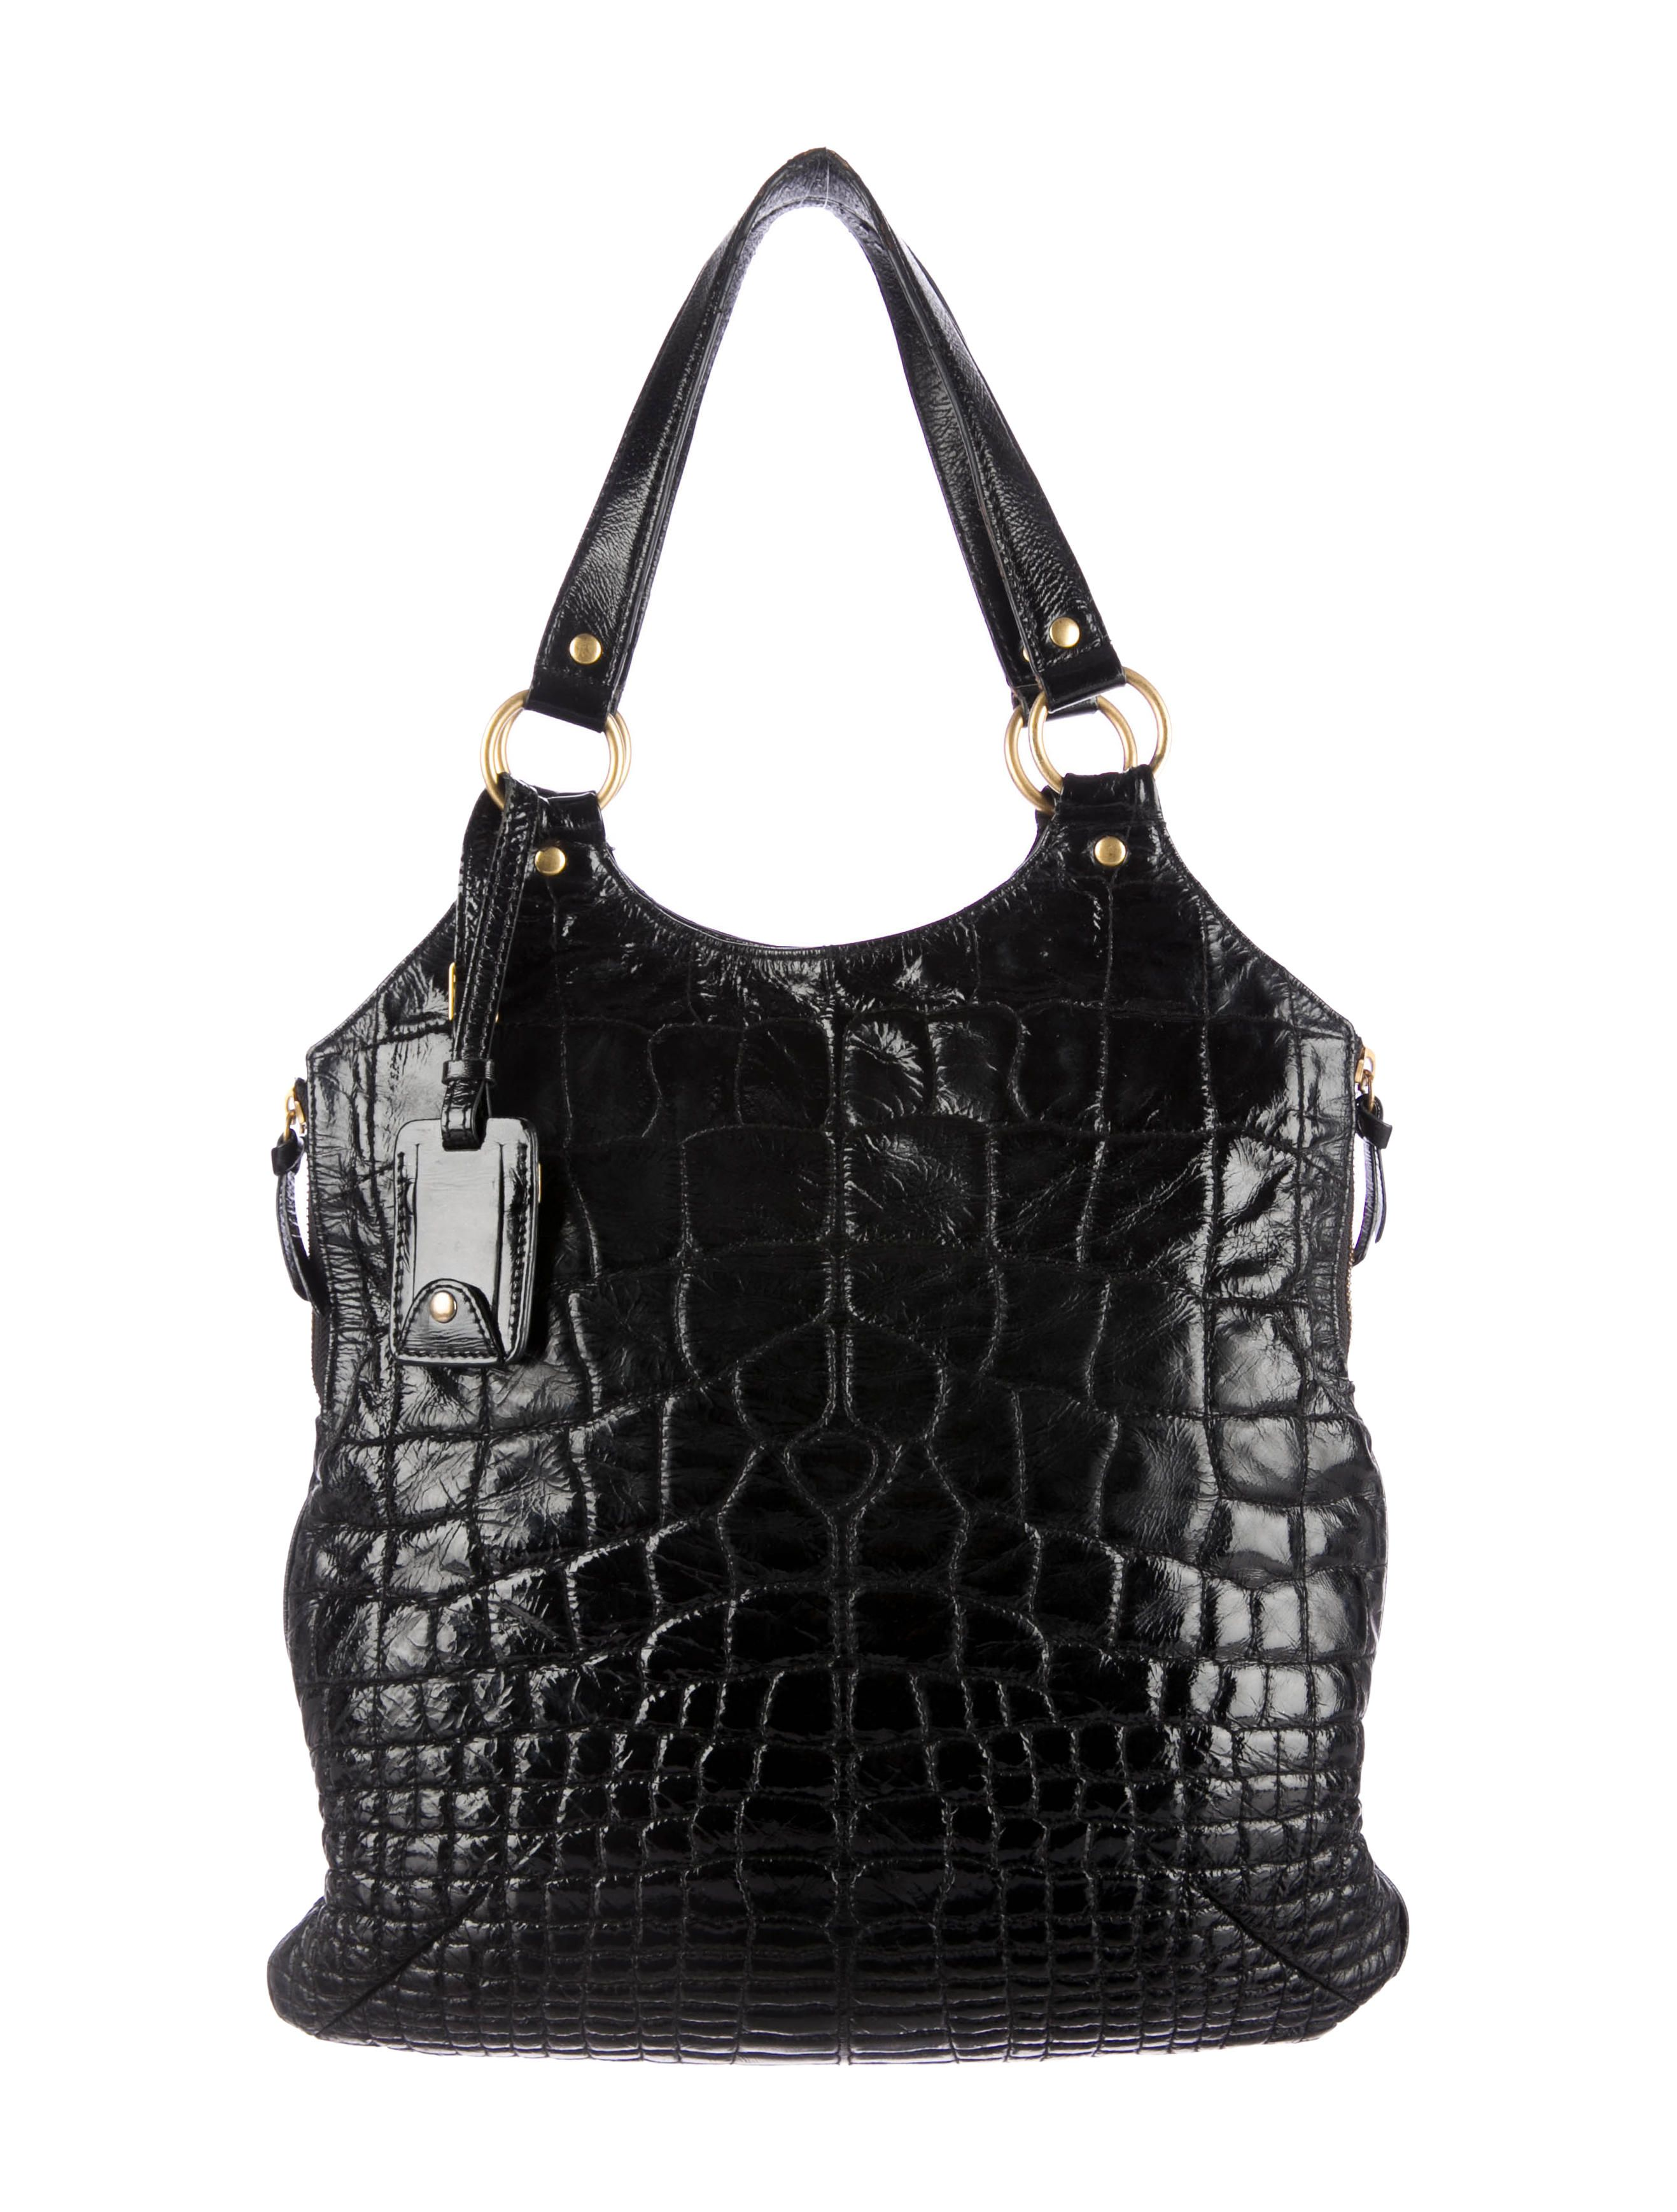 Black Yves Saint Laurent patent leather Tribute tote with gold-tone  hardware, dual flat 1f1ba3ee94